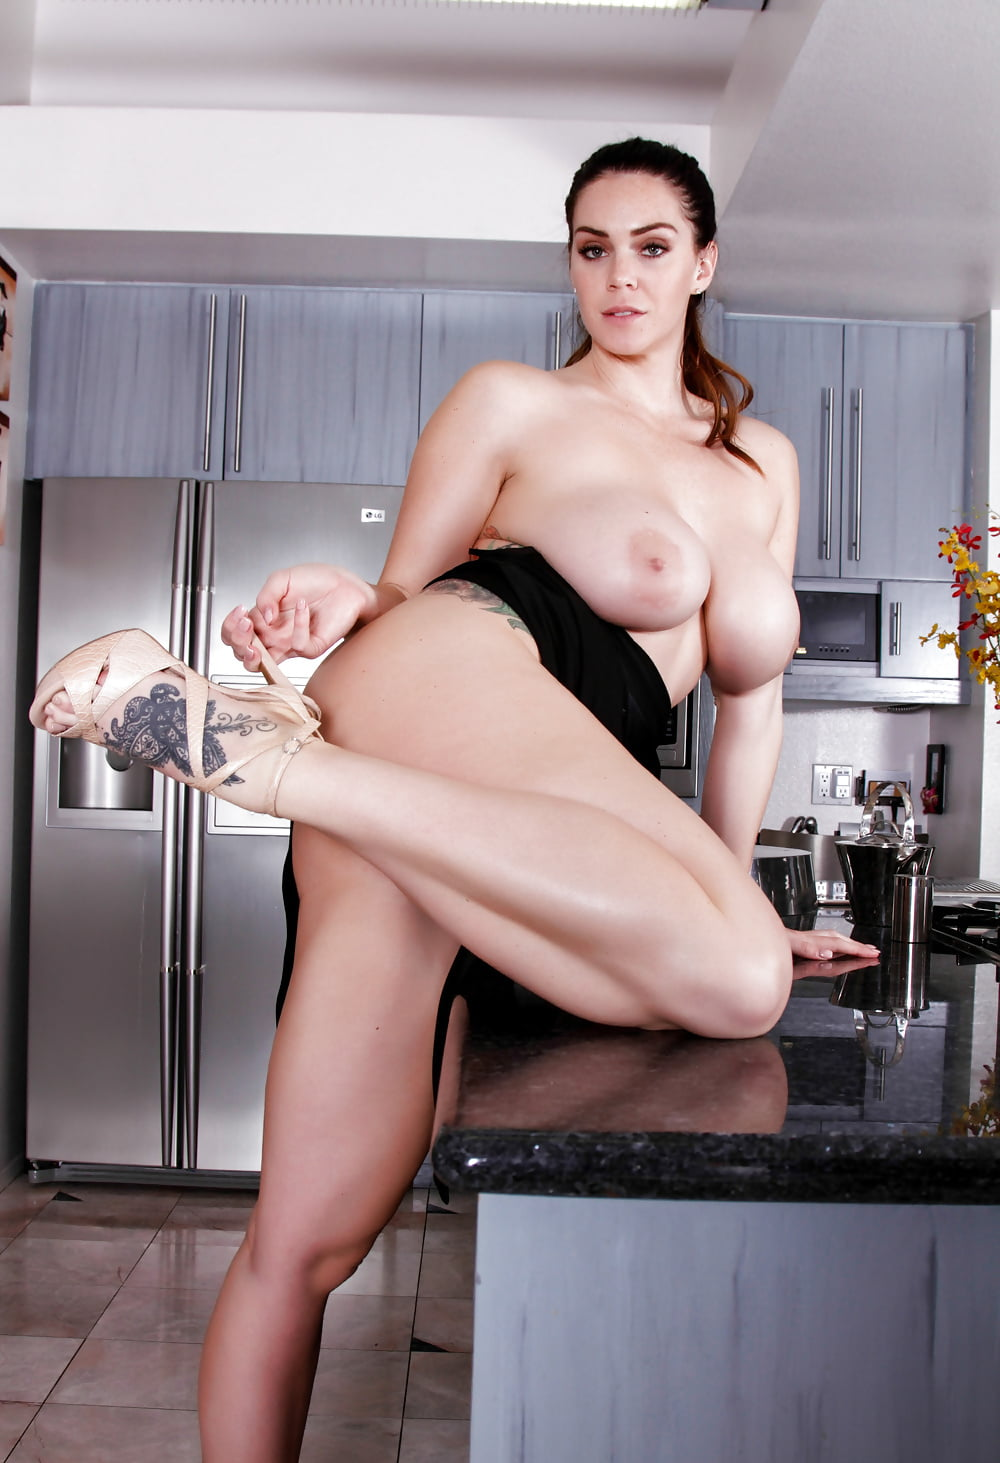 Alison tyler uses her long legs to tease off her stockings